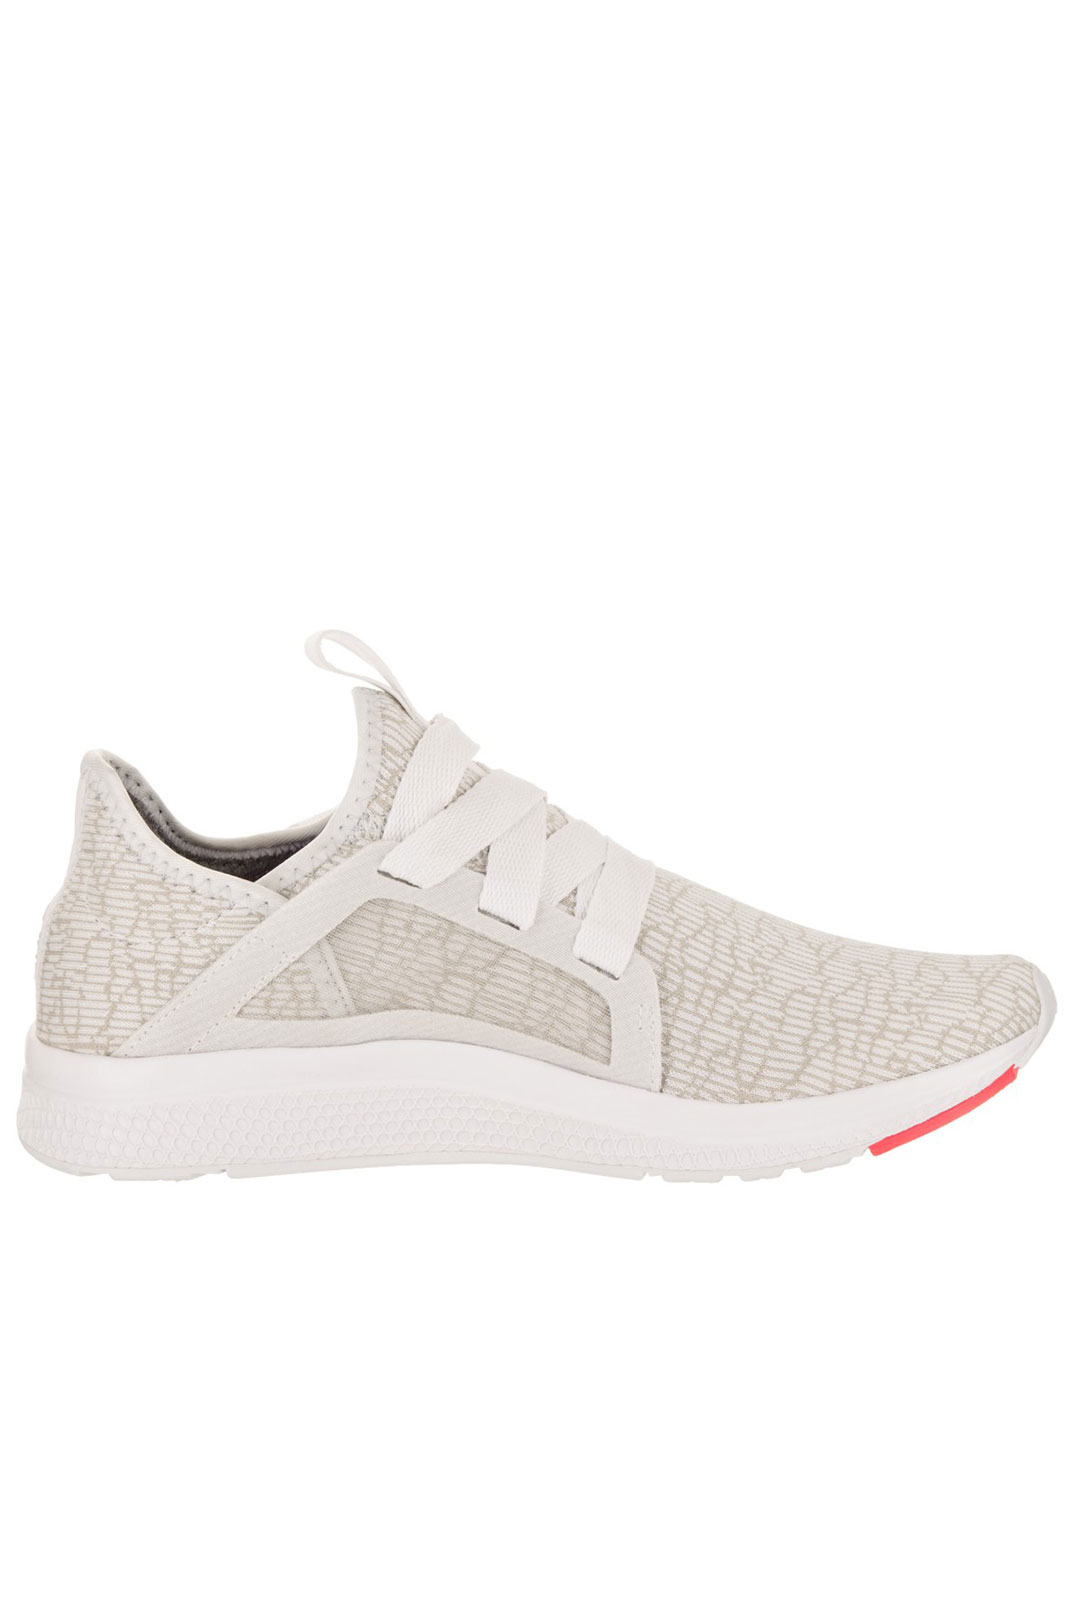 Baskets / Sneakers  Adidas AQ3471 edge lux w WHITE